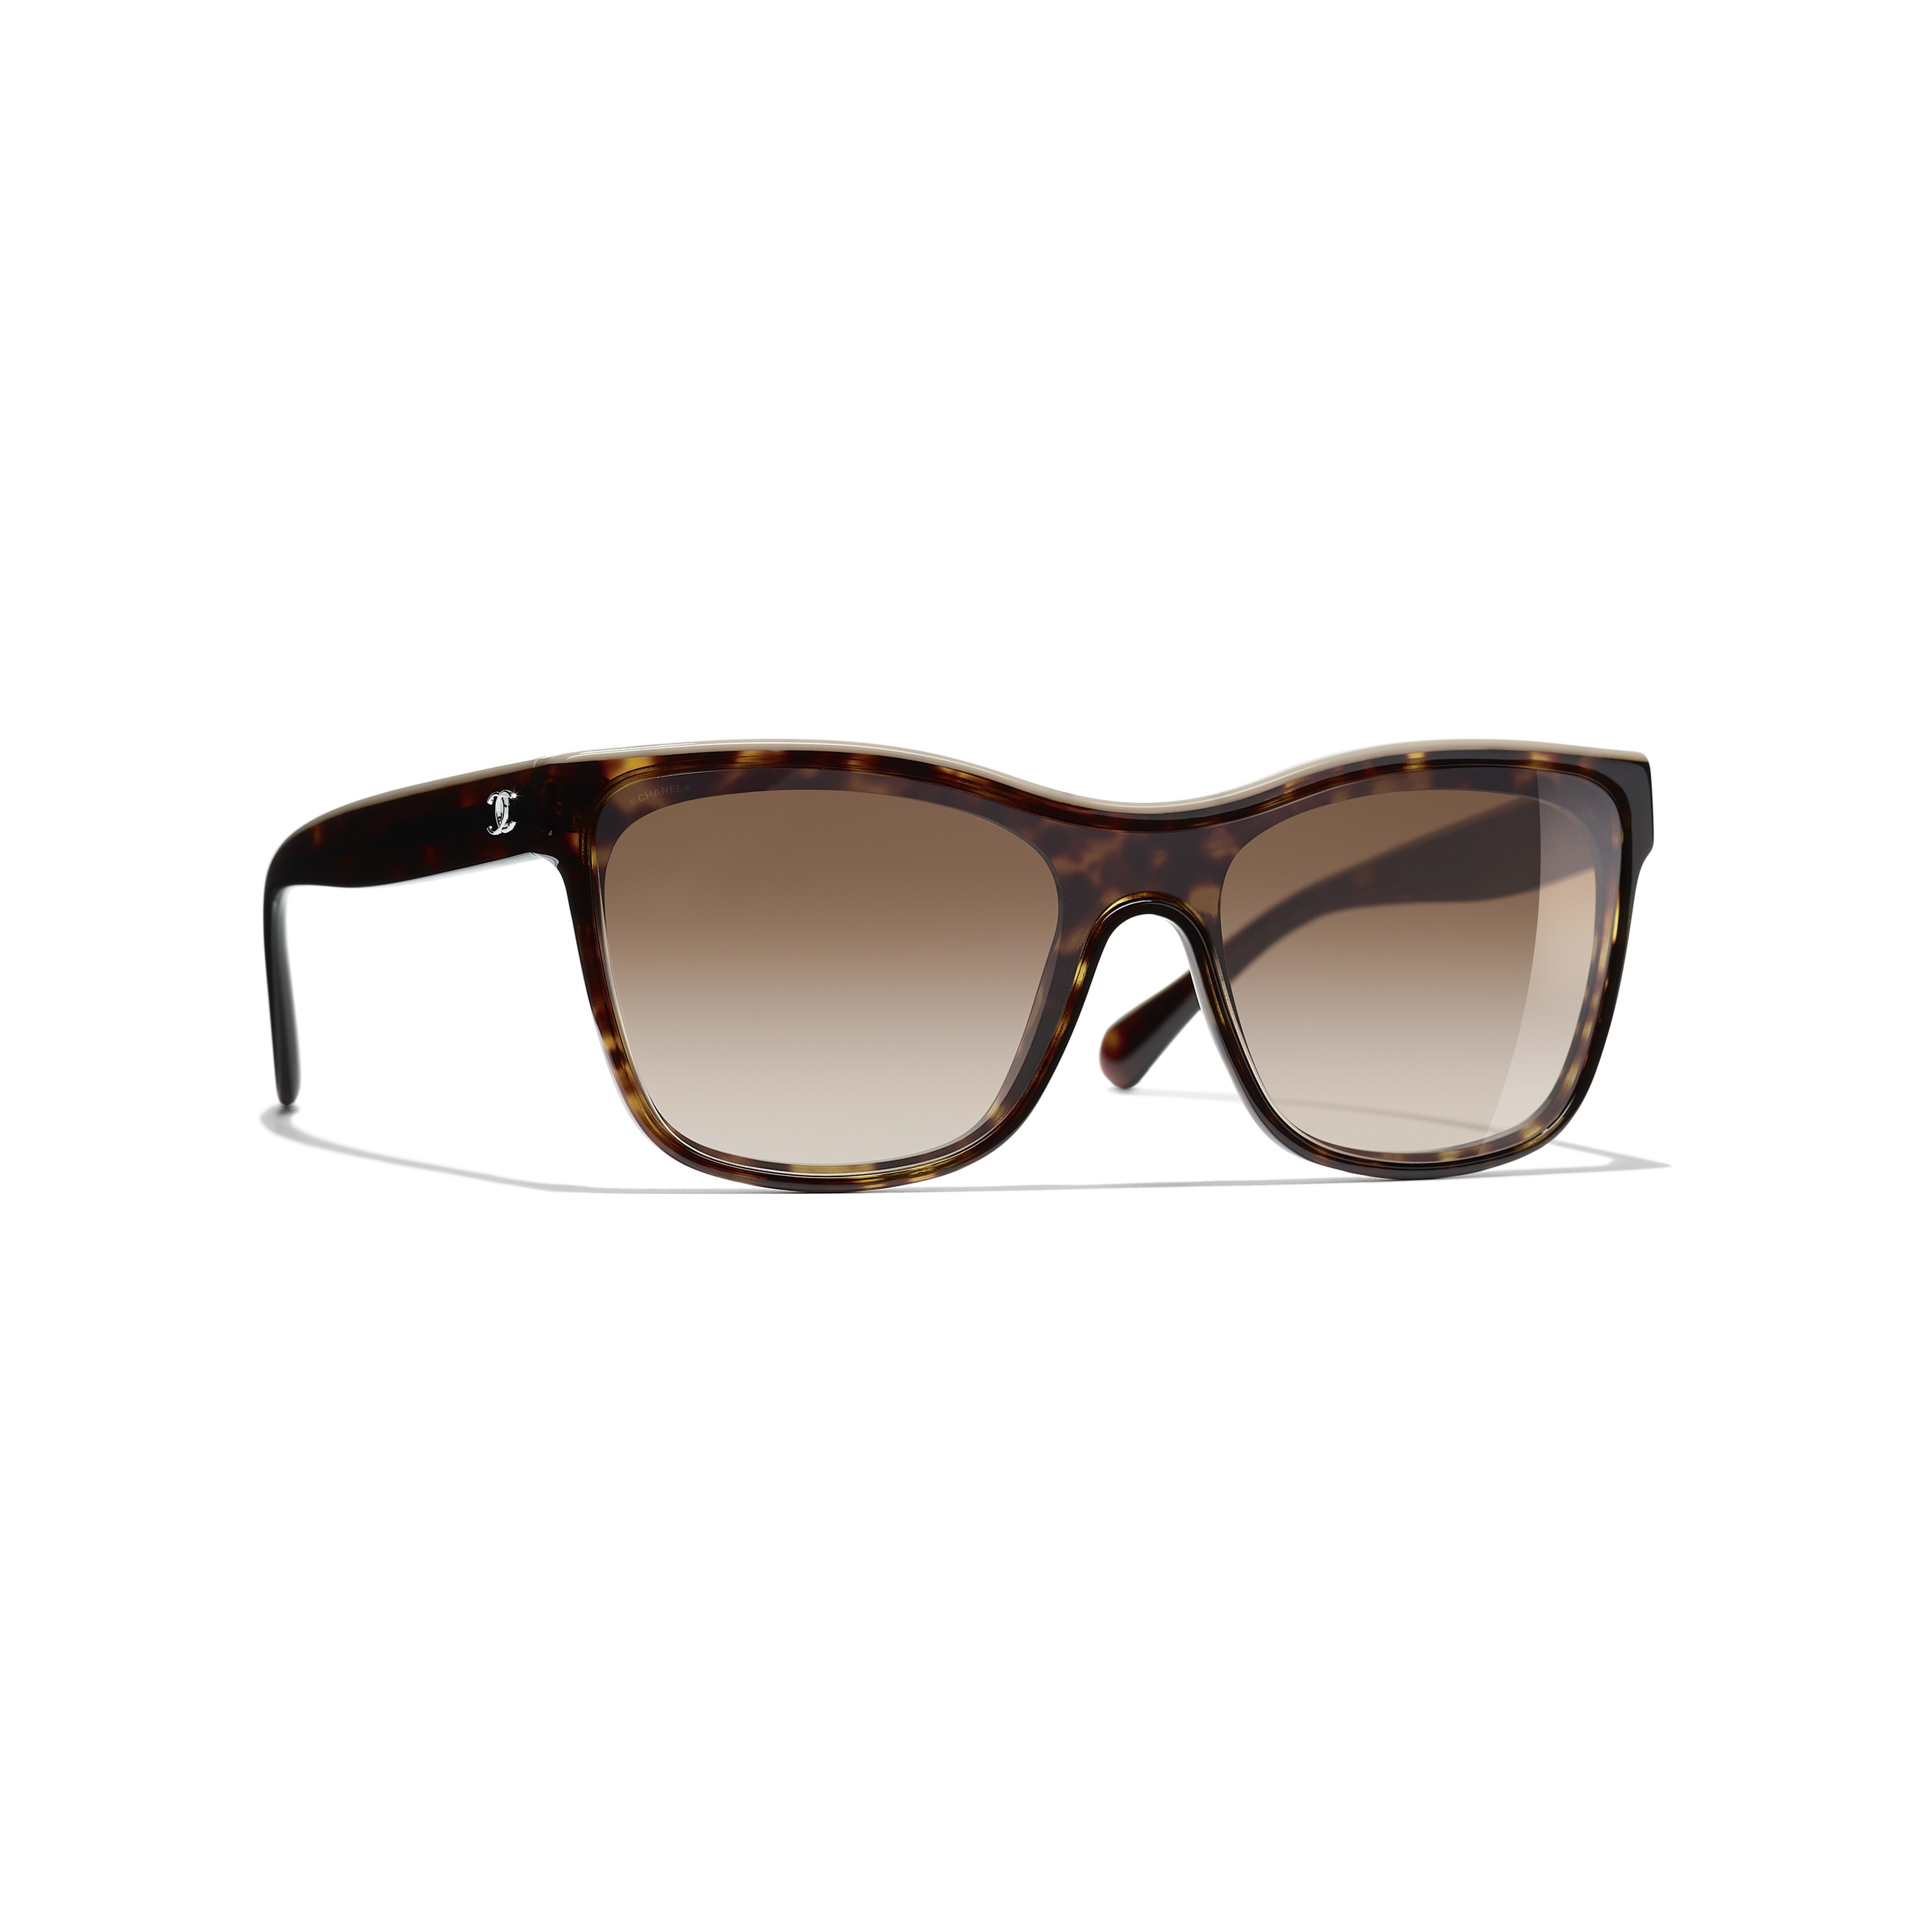 Shield Sunglasses - Dark Tortoise & Beige - Acetate - CHANEL - Default view - see standard sized version